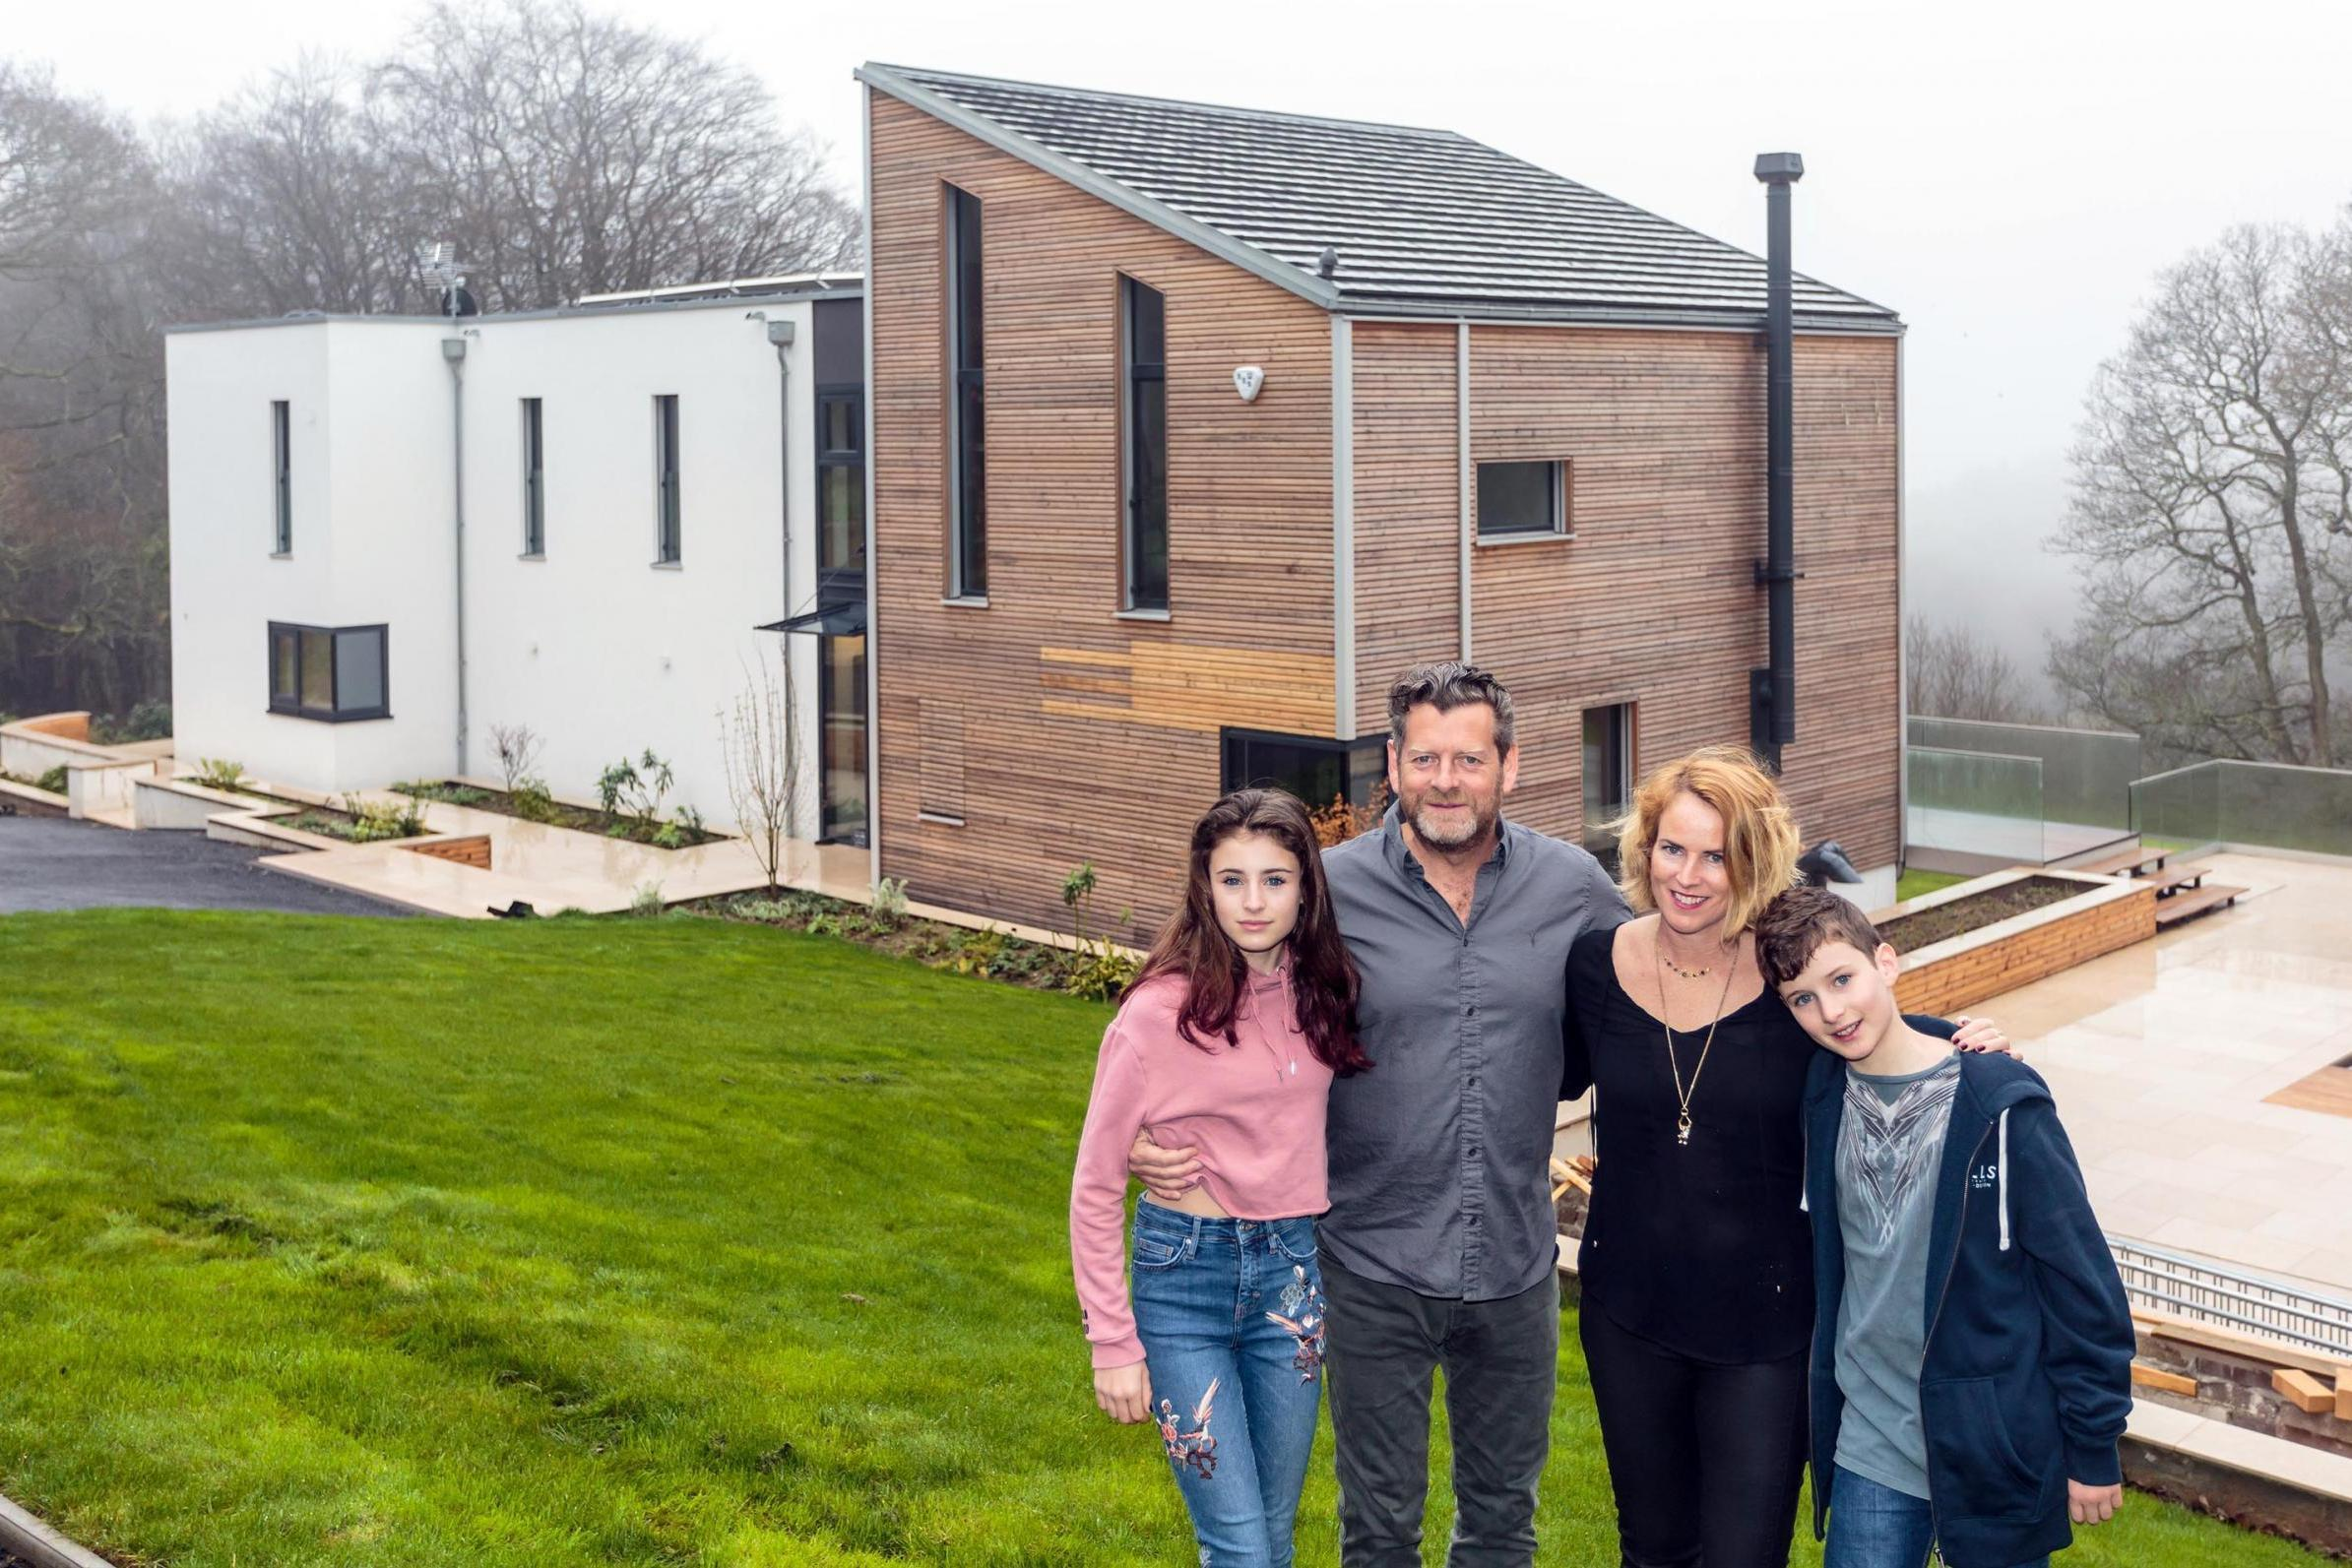 Uk Family Build Dream Six Bedroom Home In Just Four Days